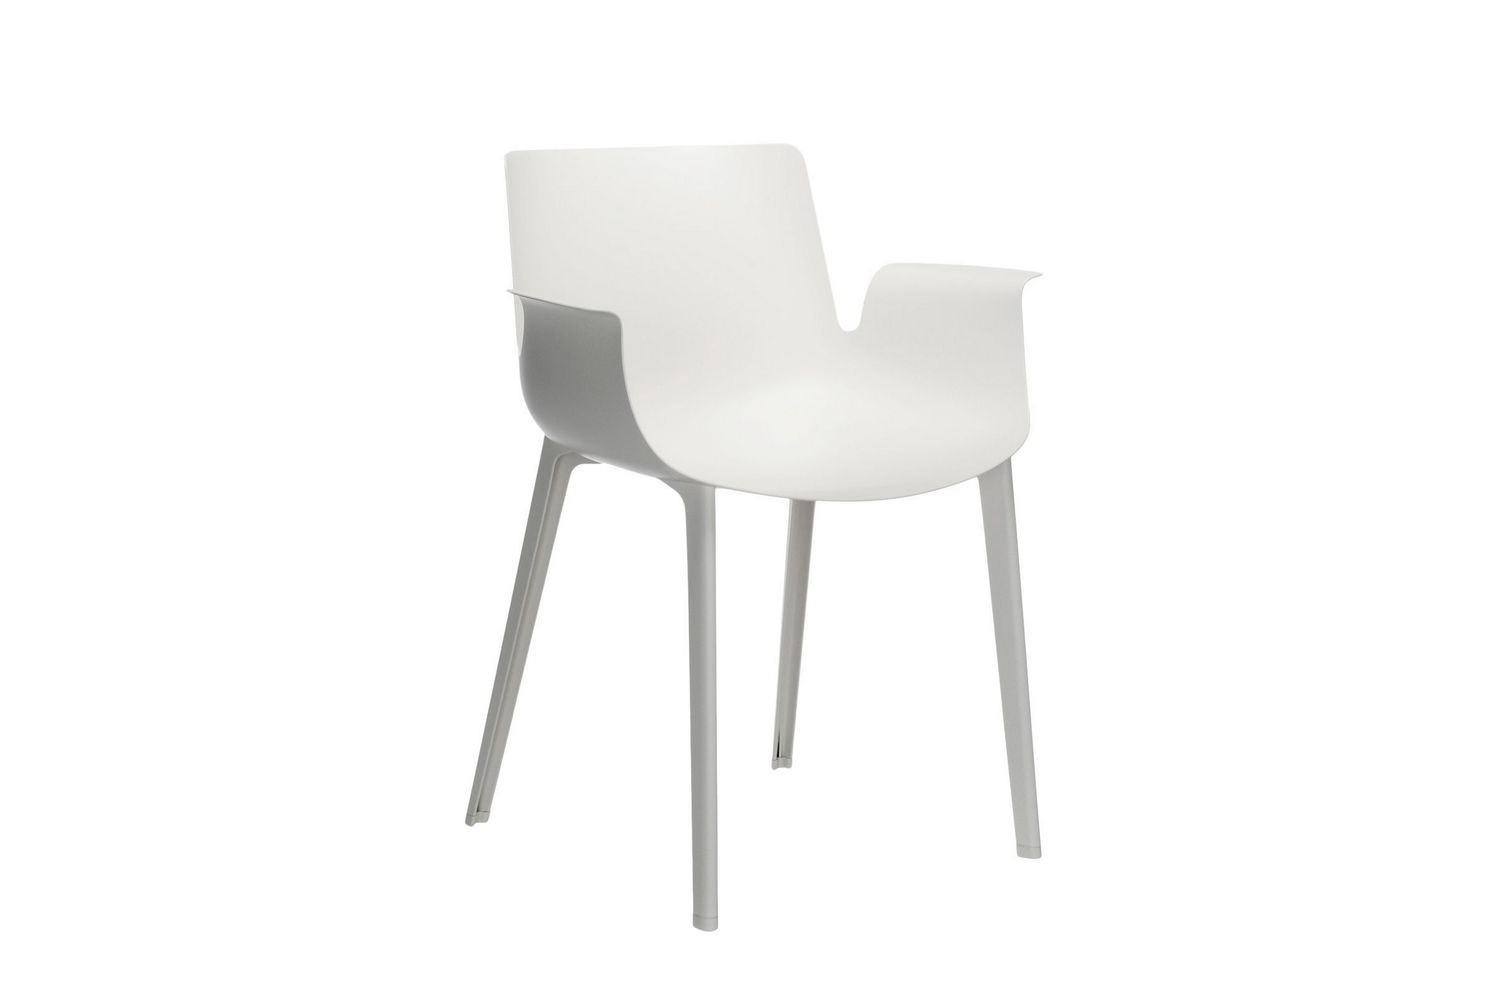 Piuma Chair by Piero Lissoni for Kartell